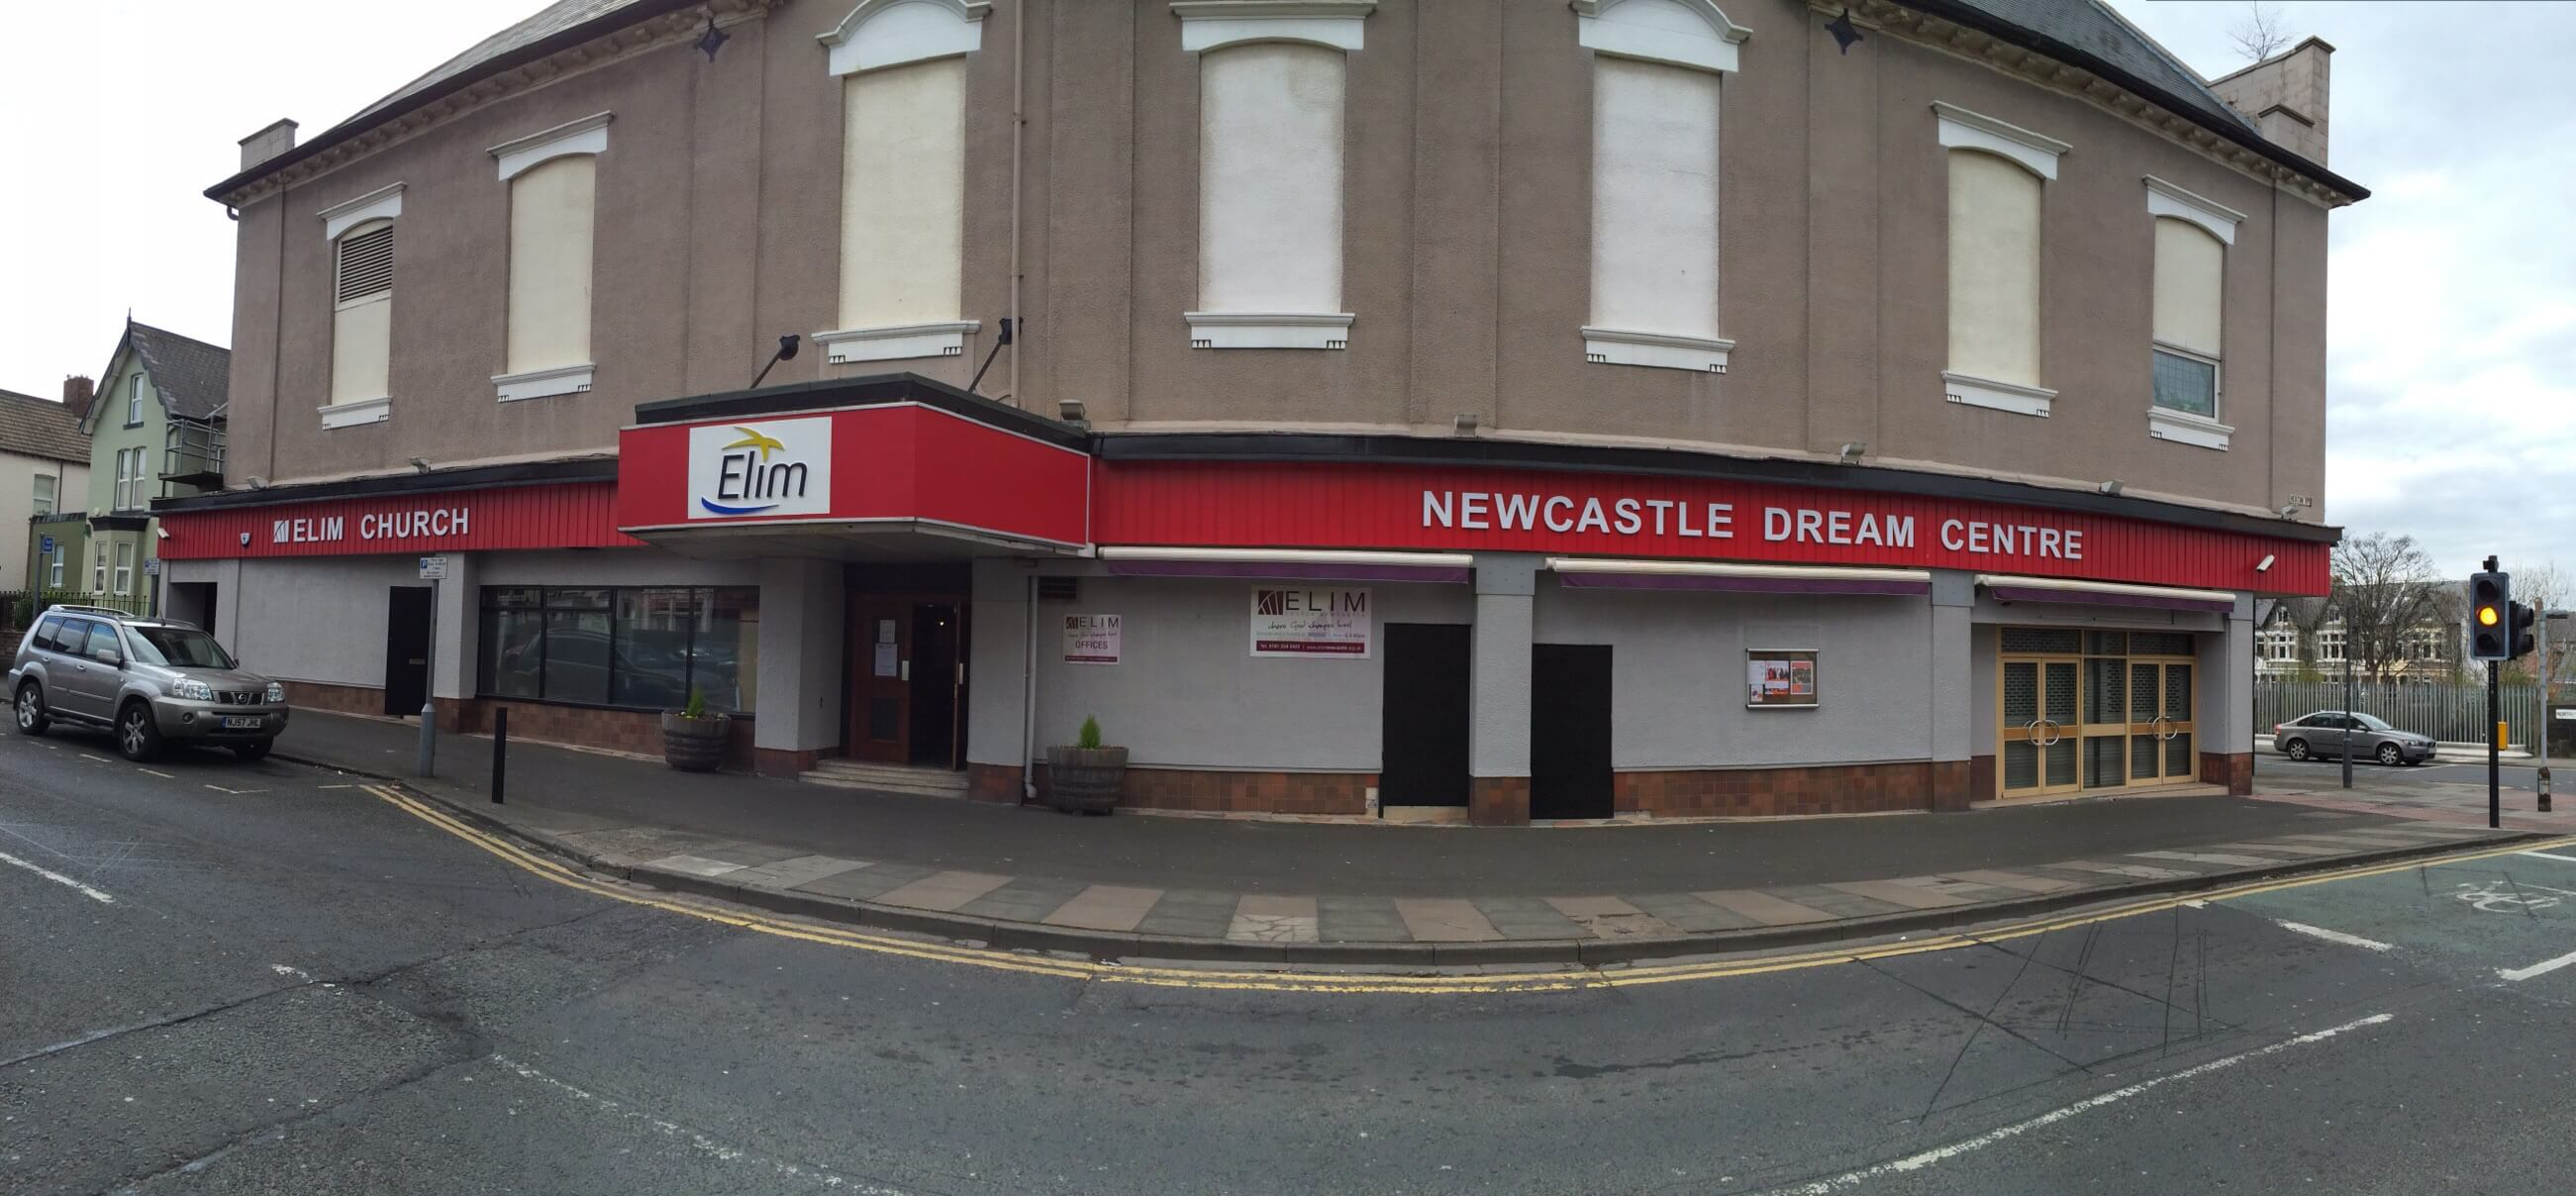 Newcastle Dream Centre